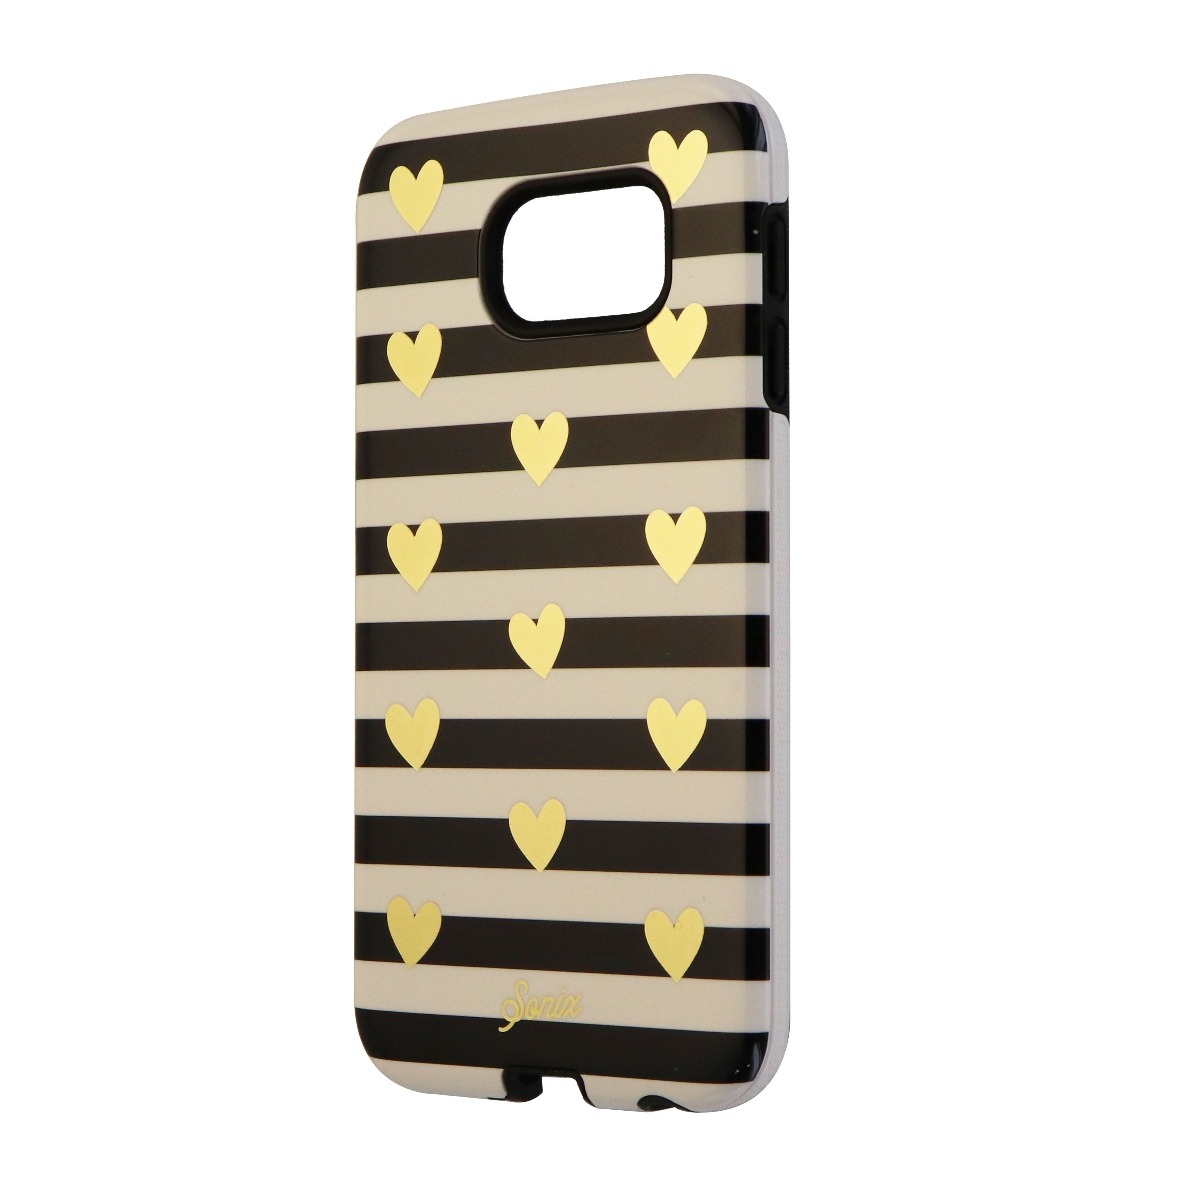 Sonix Inlay Series Protective Case for Samsung Galaxy S6 - Heart Stripe Gold